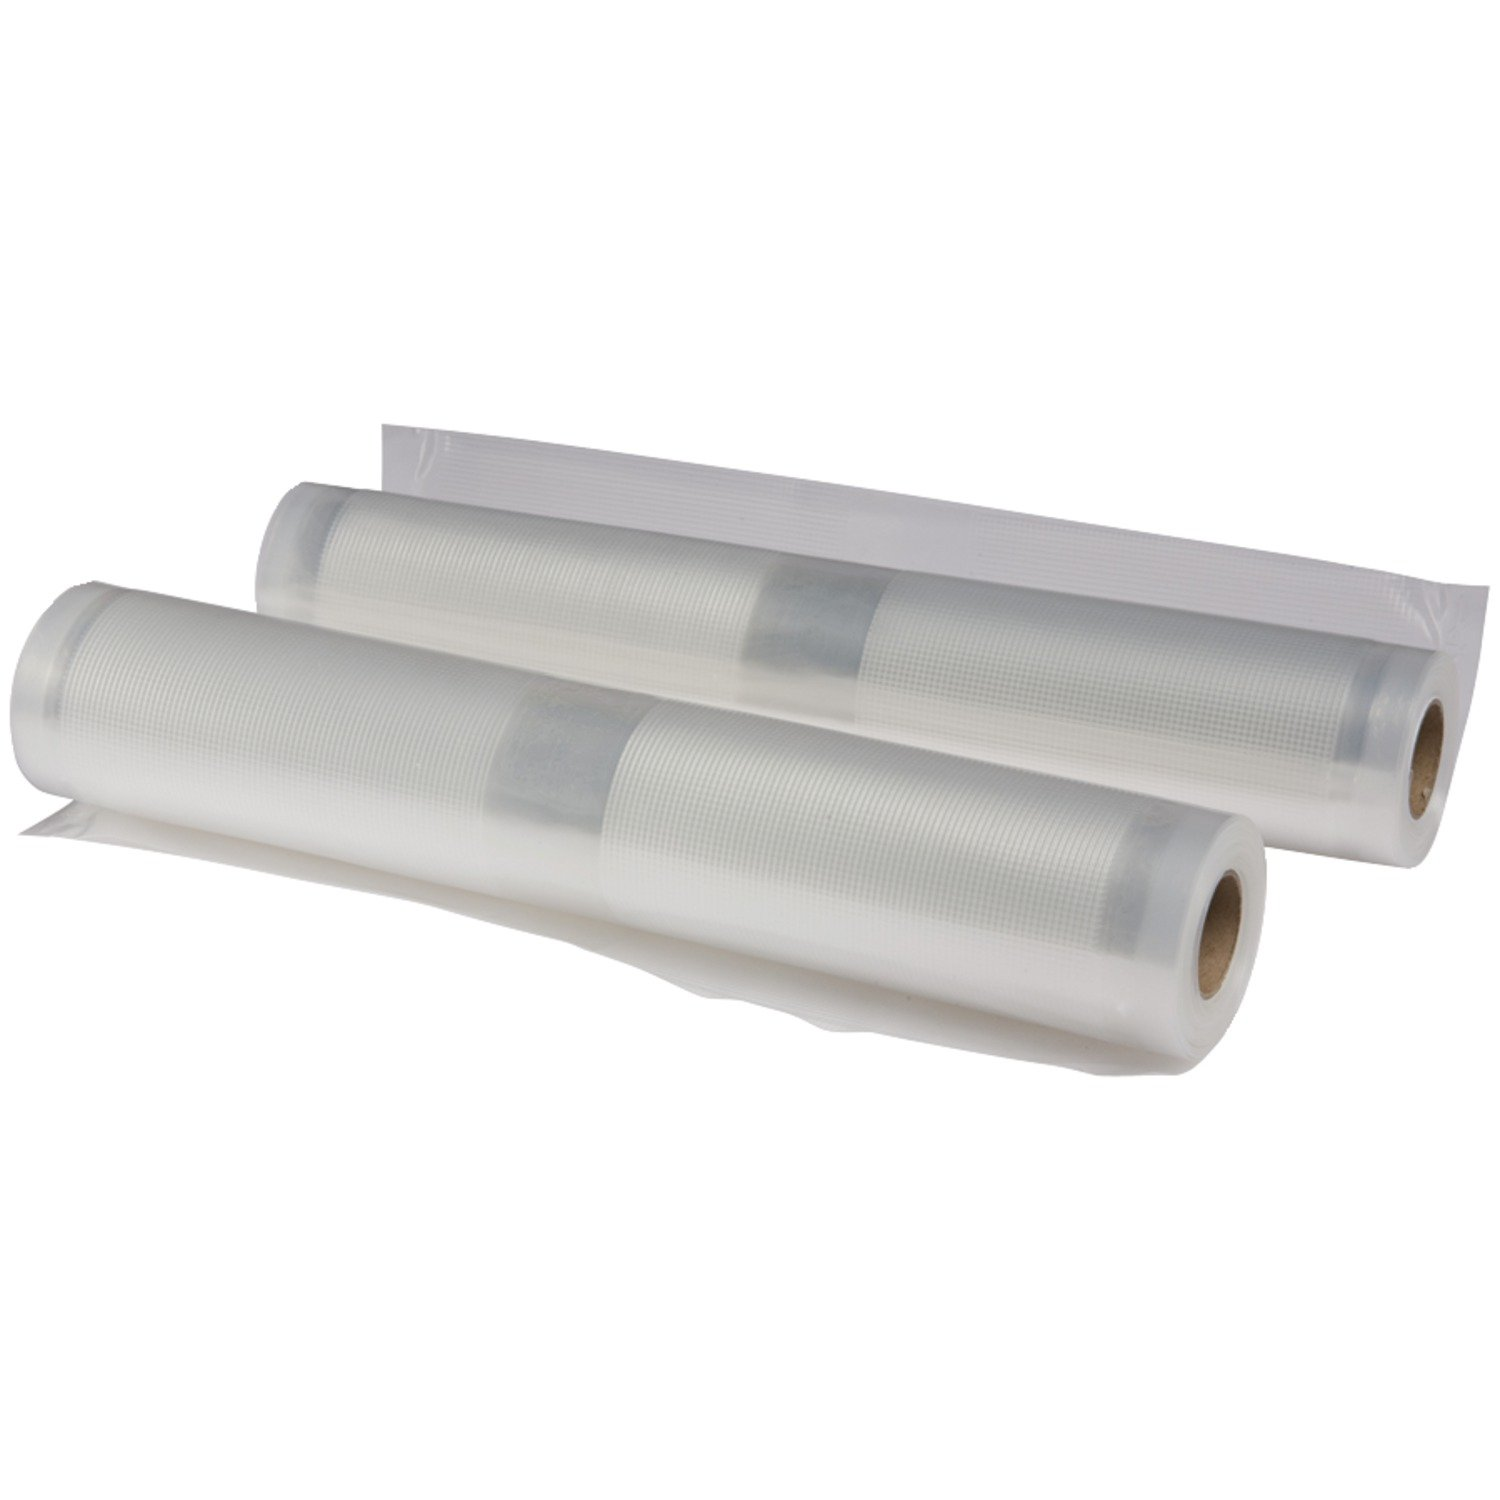 NESCO VS-04R, Vacuum Sealer Replacement Roll Bags, 11.0 inch x 19.70 feet, 2 pack